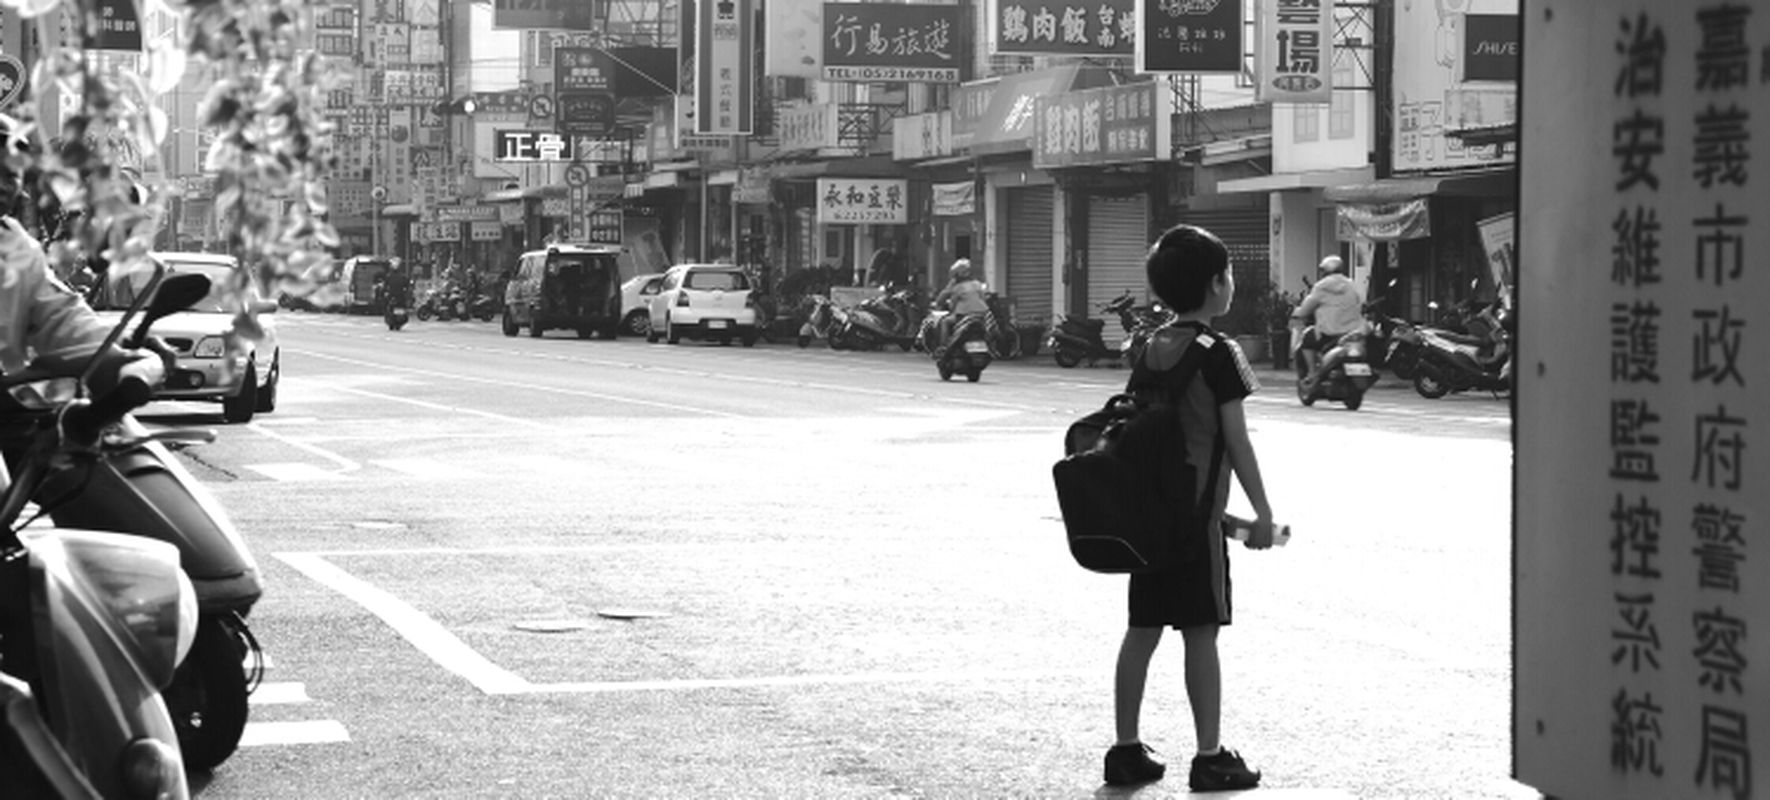 blackandwhite Enjoying the View Taiwan enjoying life streetphoto_bw what i saw eye4photography  Snap Life Life in motion People watching streetphotography people by SCBeelzebub